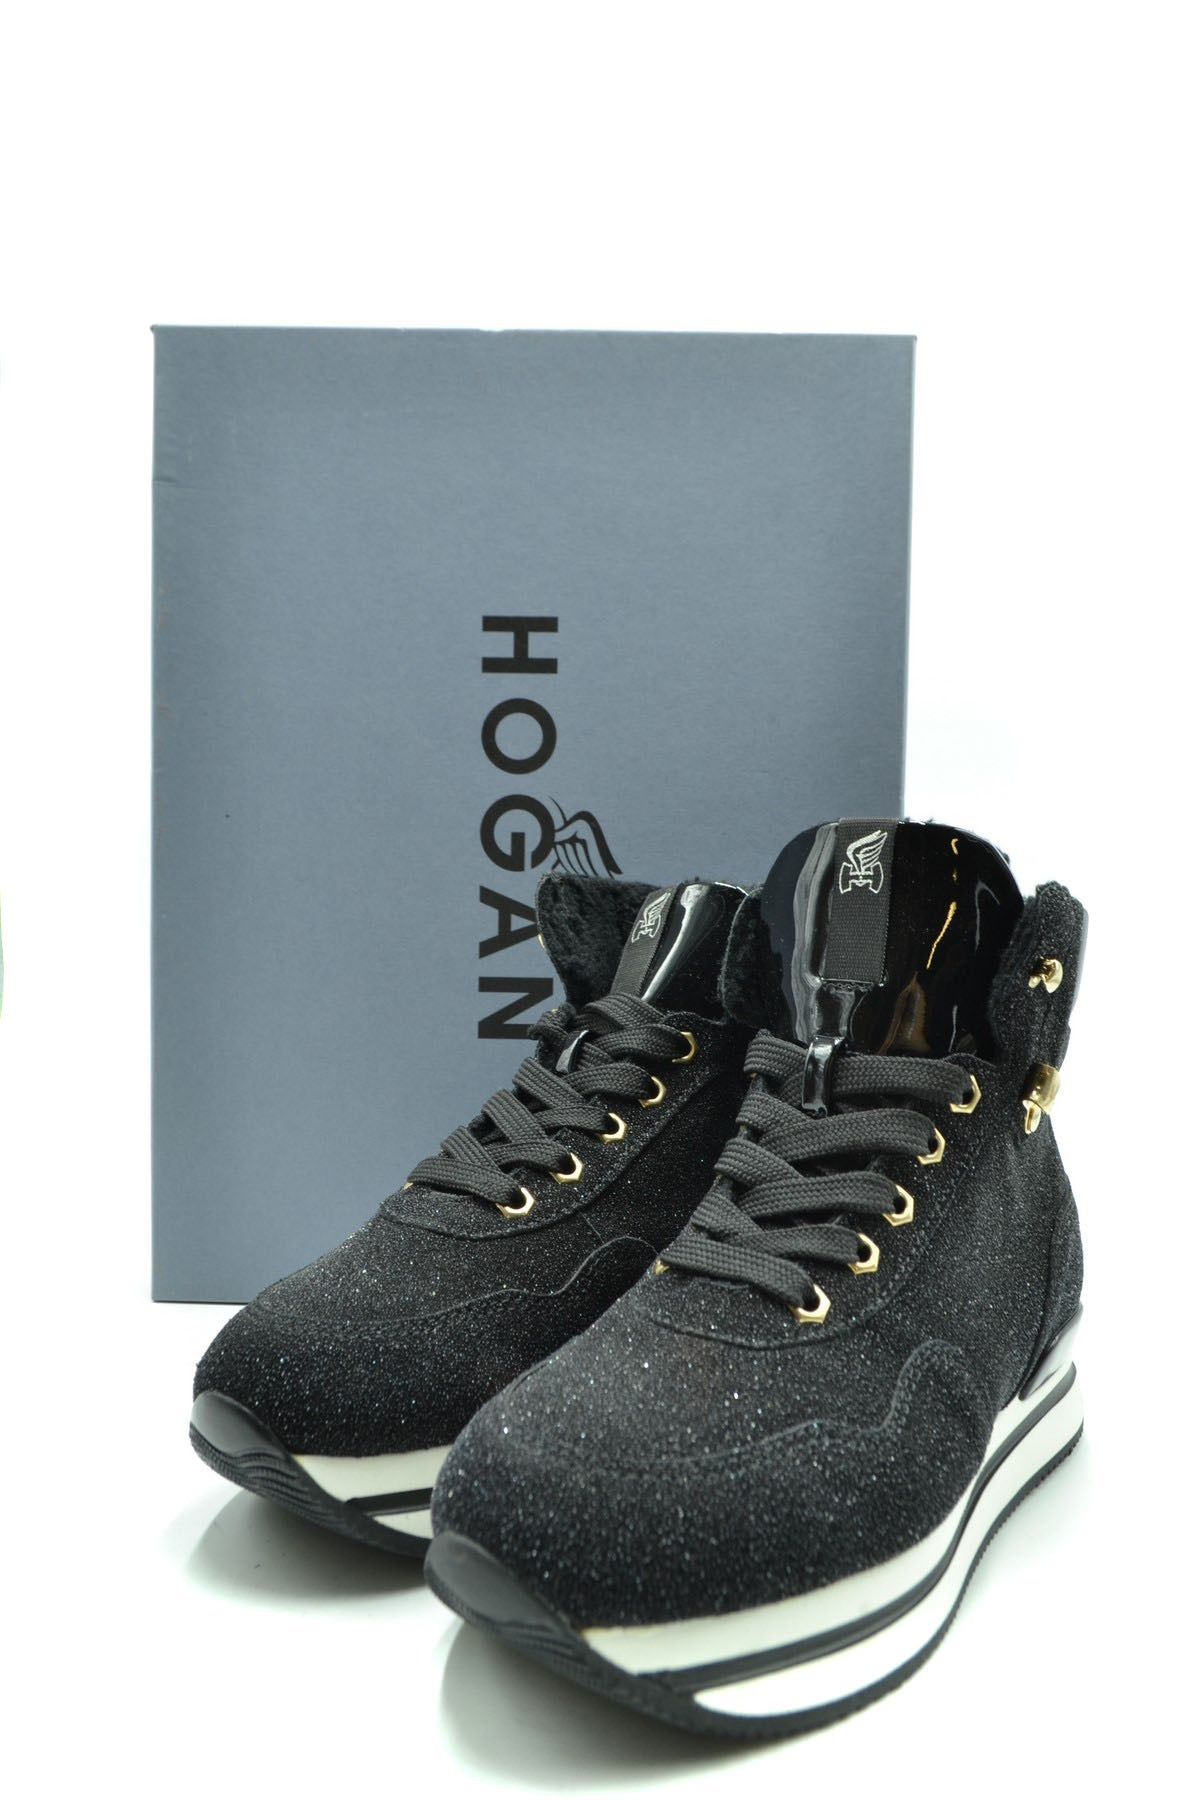 Shoes Hogan-Sports & Entertainment - Sneakers-Product Details Terms: New With LabelMain Color: BlackType Of Accessory: ShoesSeason: Fall / WinterMade In: ItalyGender: WomanSize: EuComposition: Leather 100%Year: 2020Manufacturer Part Number: Hxw2220Ap80667B999-Keyomi-Sook